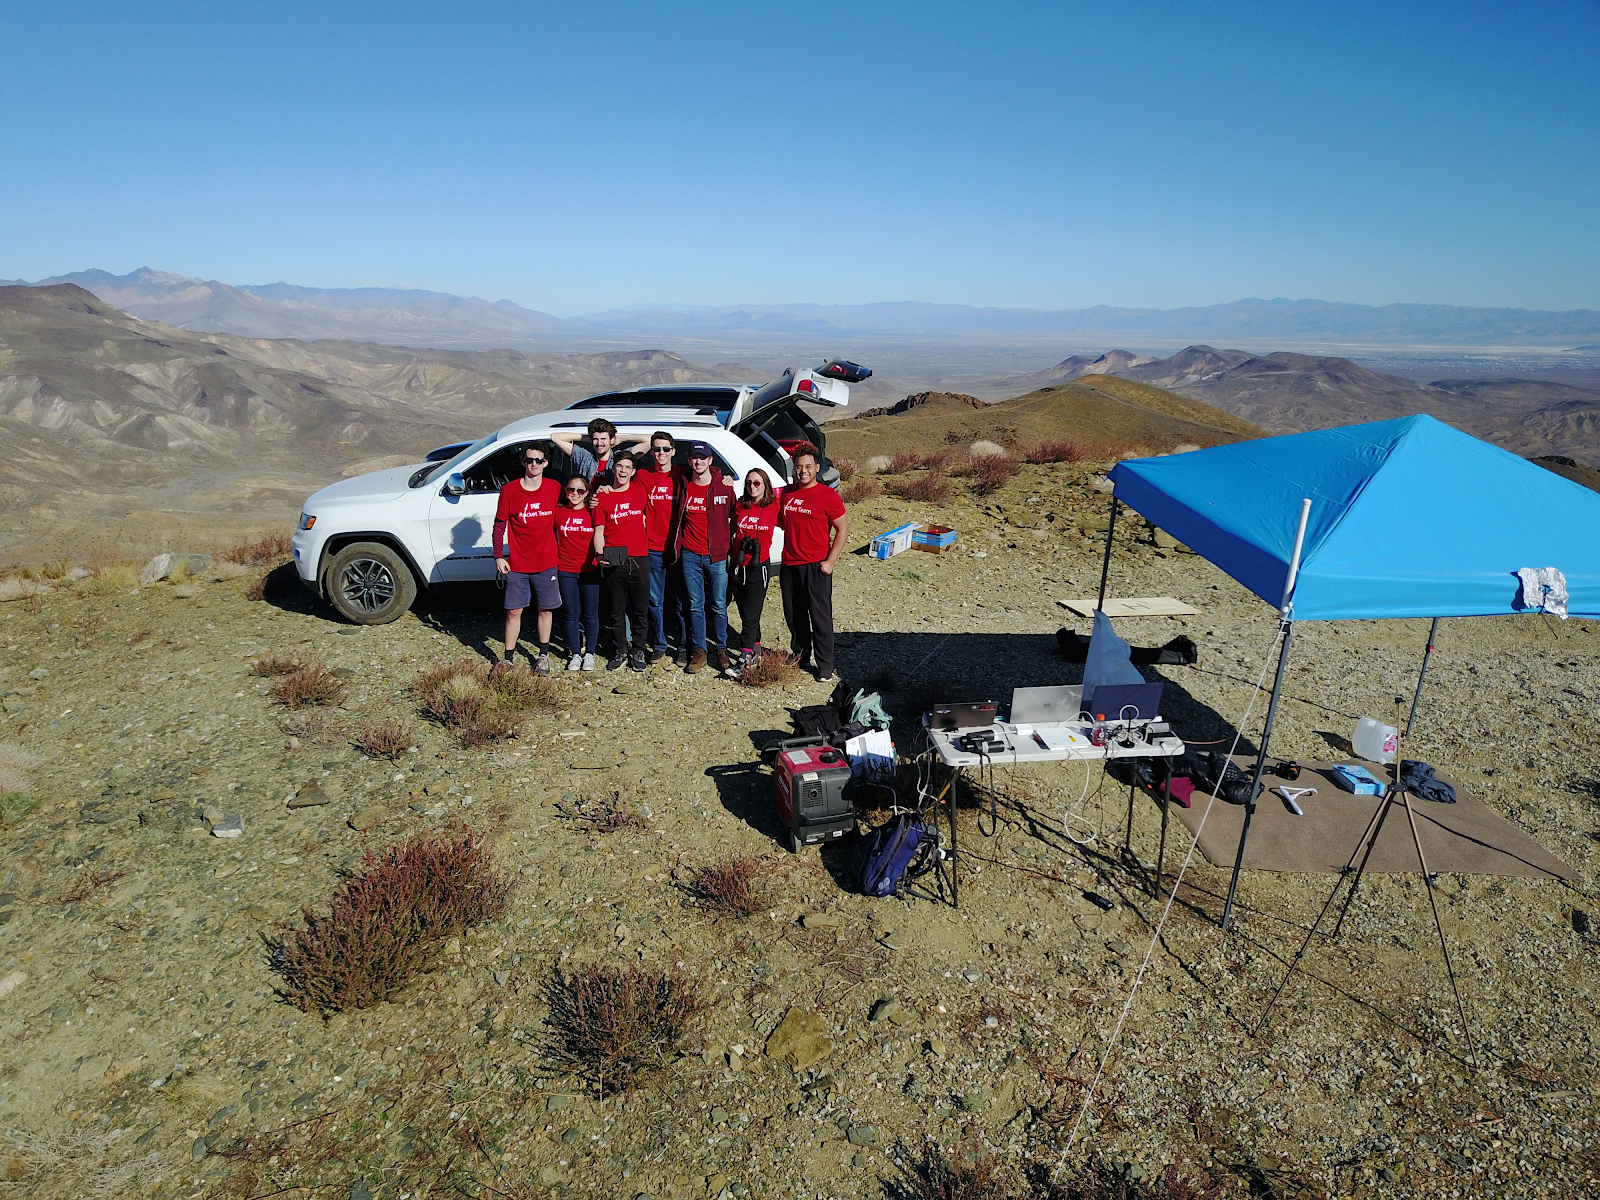 another group picture of the rest of Rocket Team standing in front of a car near an Avionics table and tent on a mountaintop in the Mojave Desert